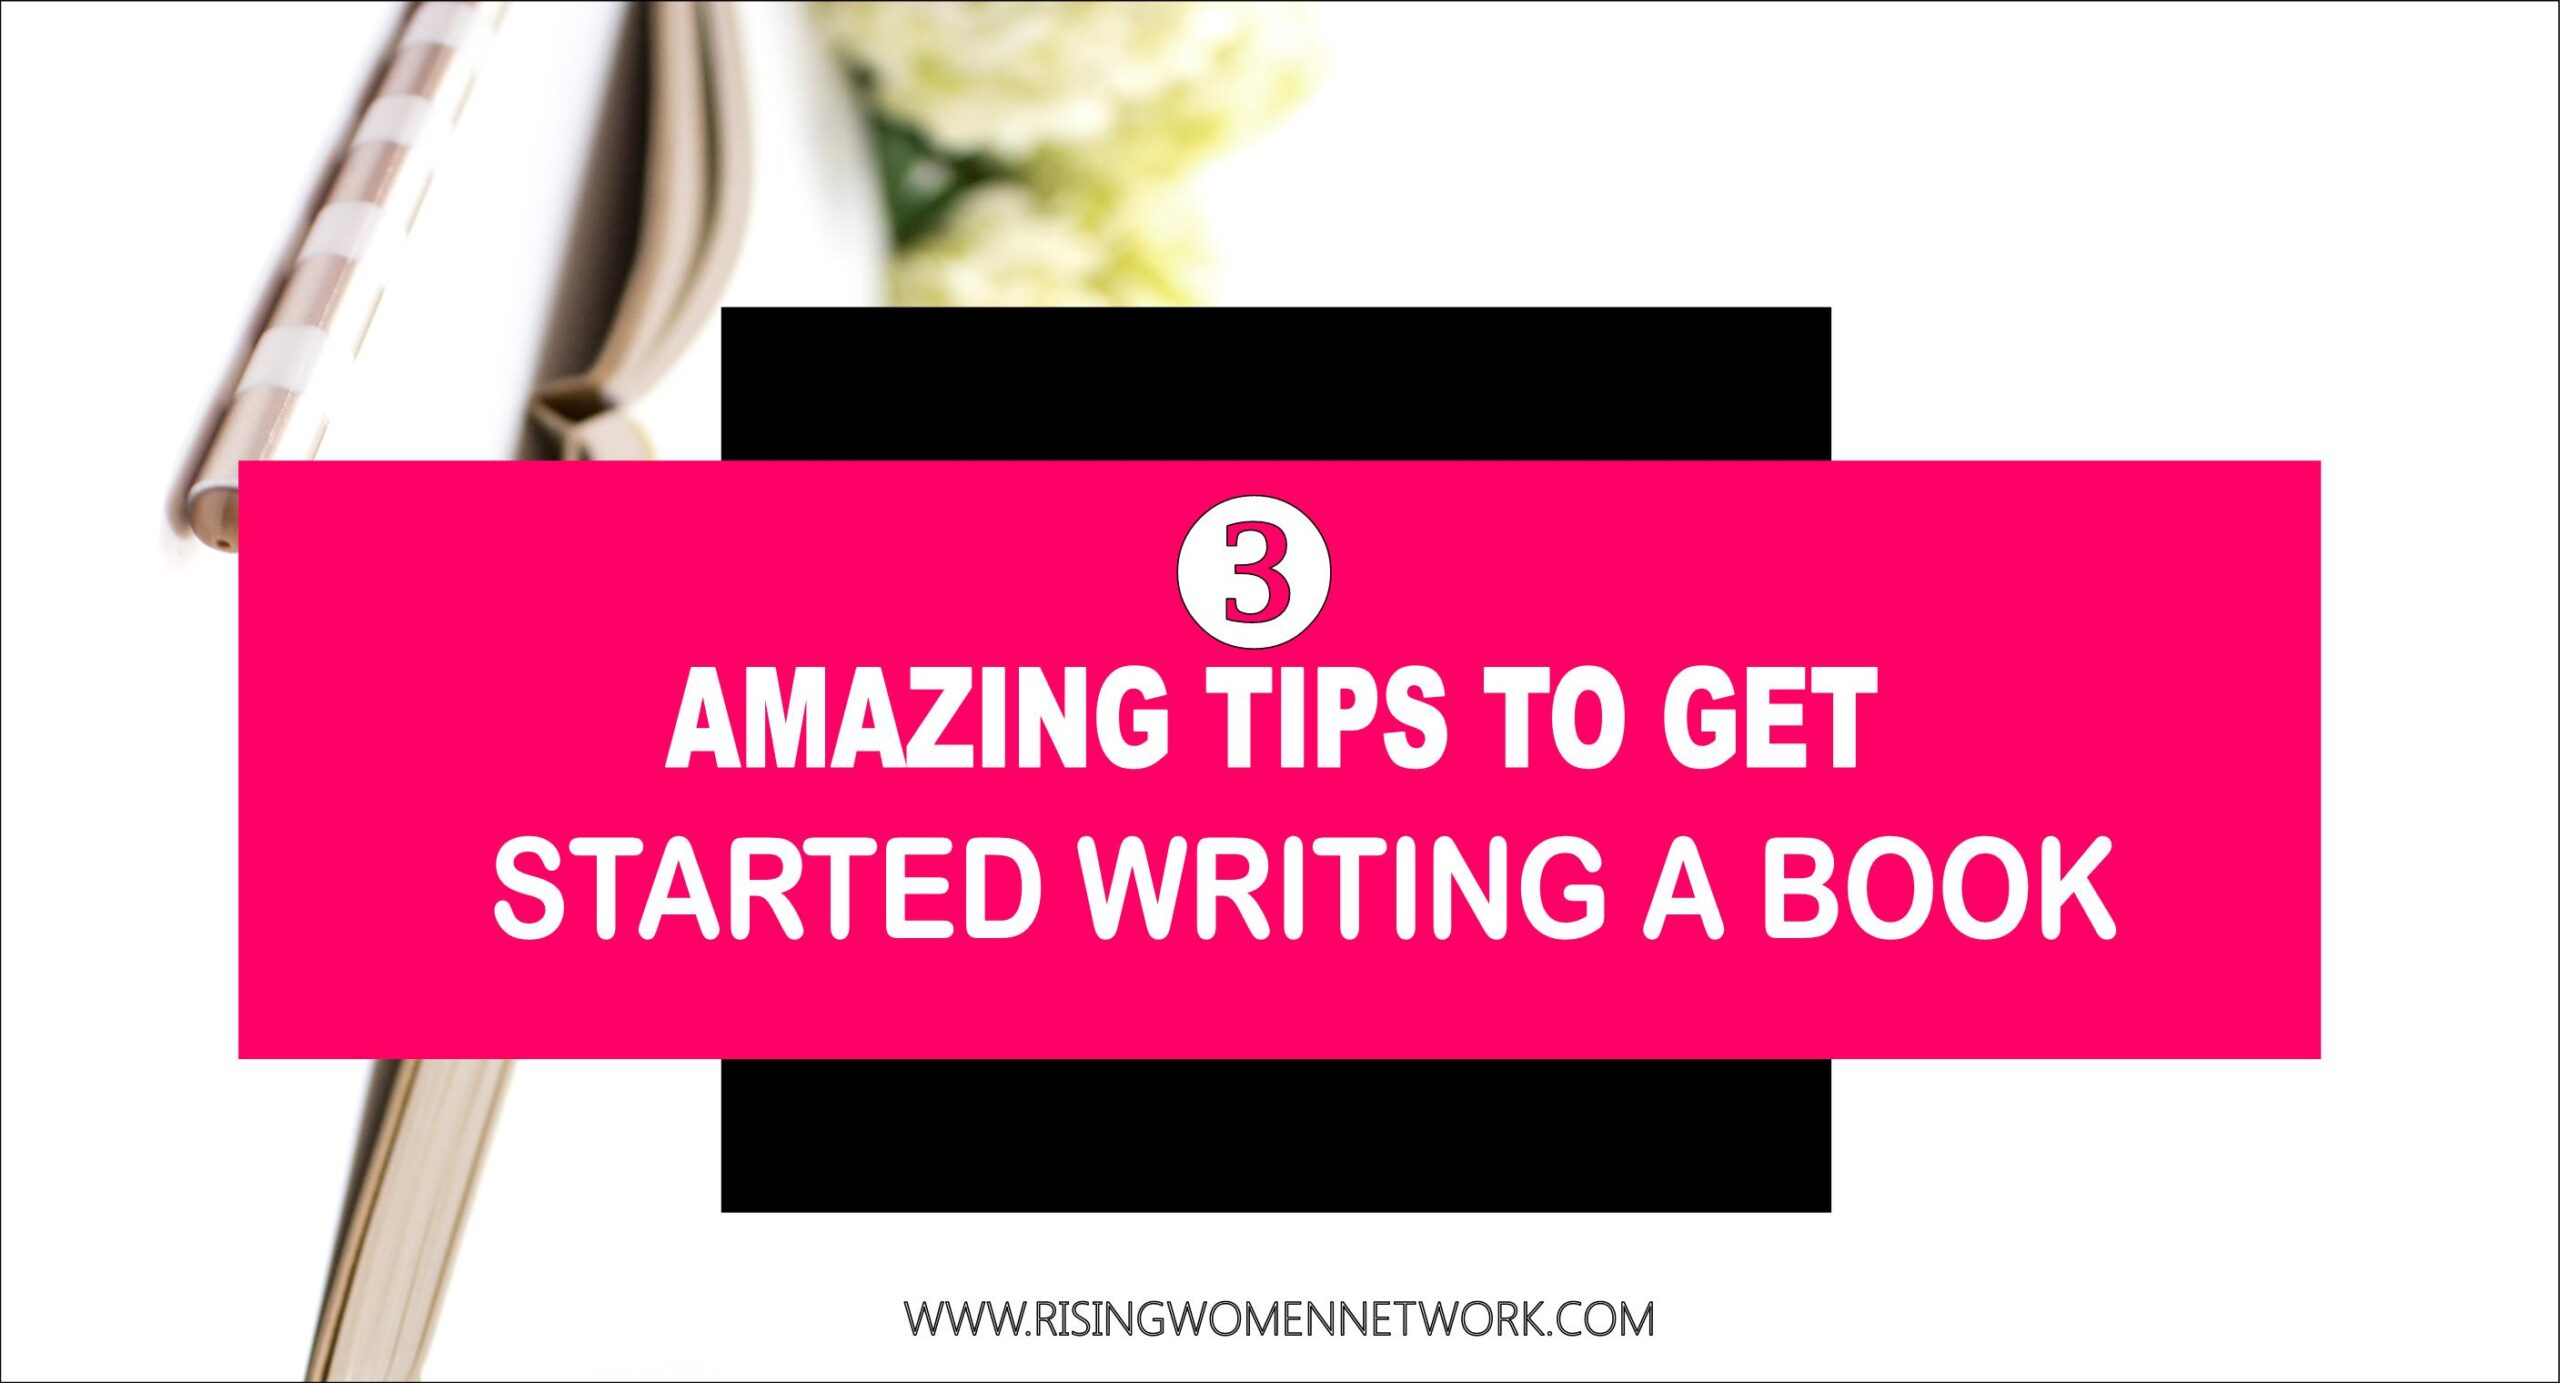 3 Amazing Tips To Get Started Writing A Book. check out this post were I my top tips that are essential if you are thinking about writing your own book!